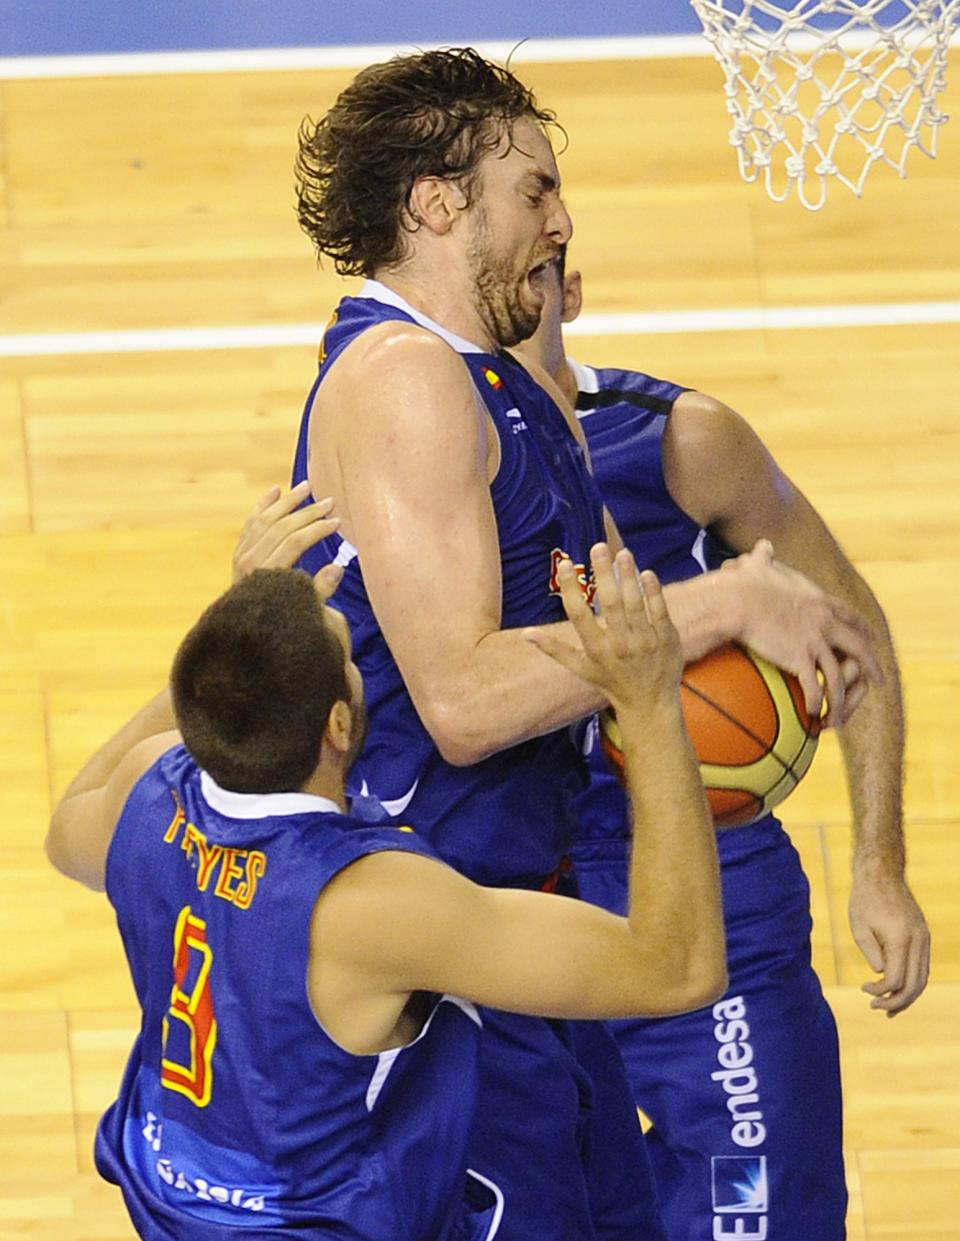 Paul Gasol of Spain Men's Senior National Team catches the ball against US Men's Senior National Team during an exhibition match between Spain and the United States Wednesday, July 25, 2012, in Barcelona, Spain, in preparation for the 2012 Summer Olympics. (AP Photo/Manu Fernandez)